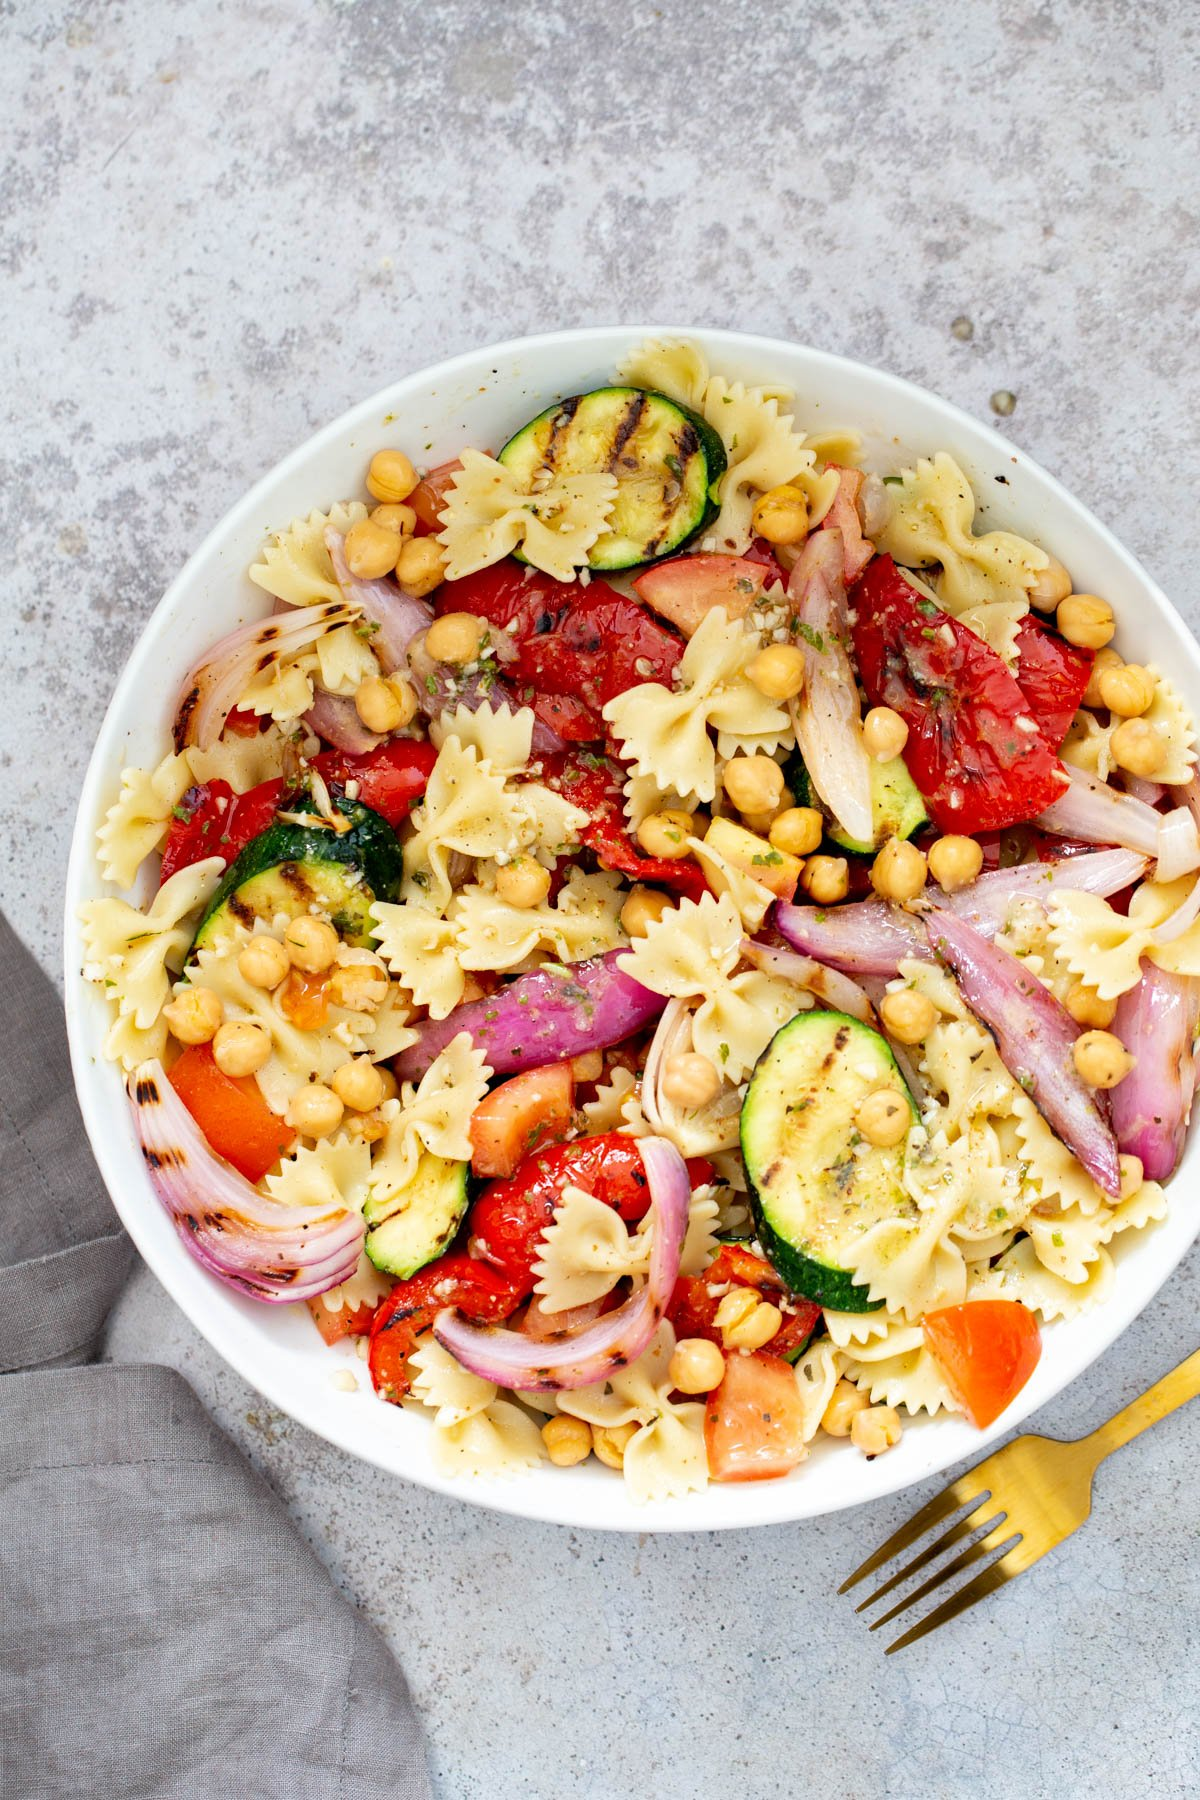 vegan grilled vegetable pasta salad with chickpeas served on a white plate with a golden fork and a cloth napkin on the side